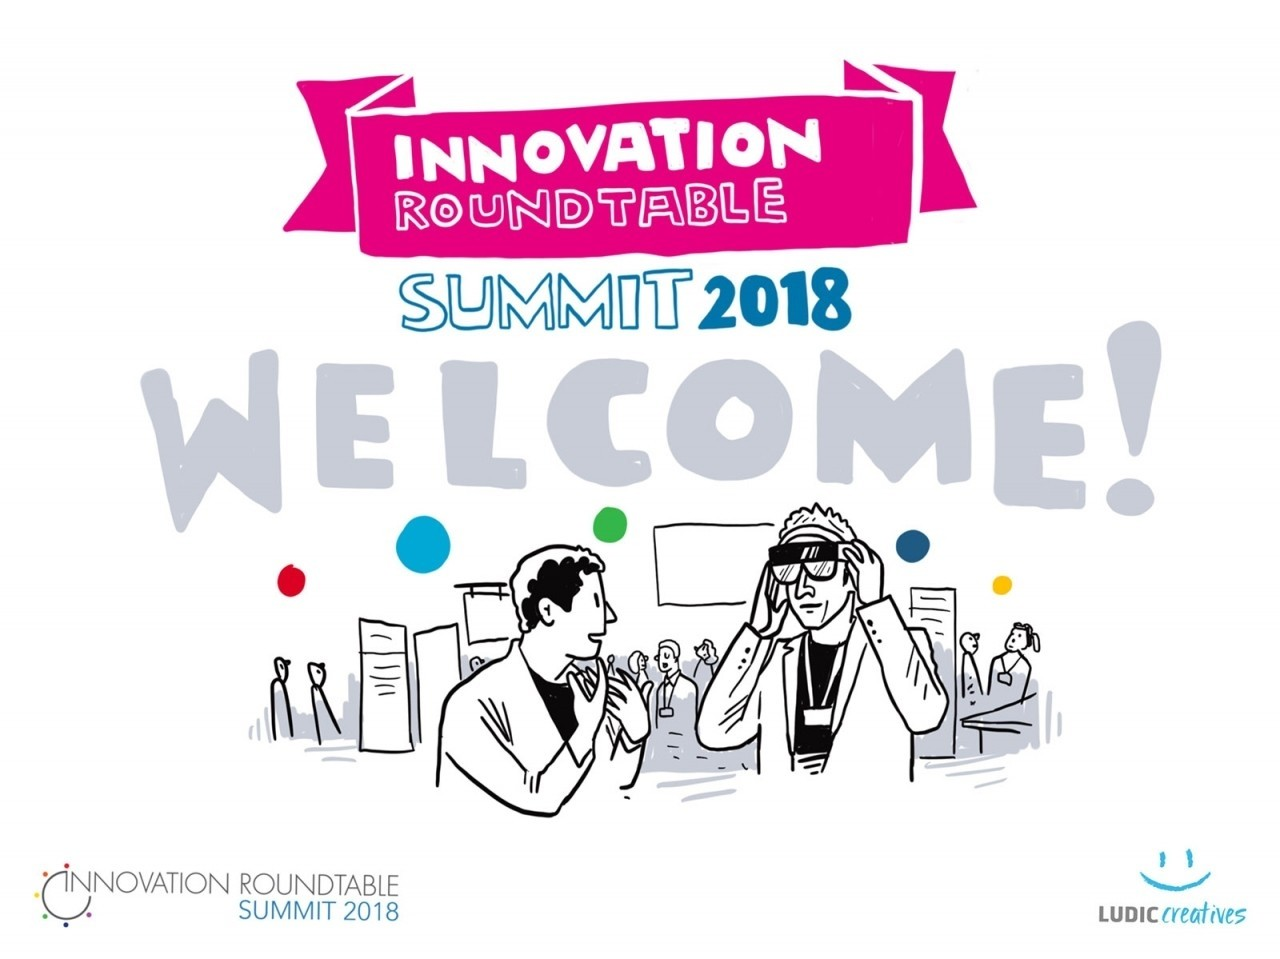 b2ap3_large_Ludic-Creatives-are-Technology-Partners-of-the-Innovation-Roundtable-Summit-2018-held-this-week-in-Copenhagen